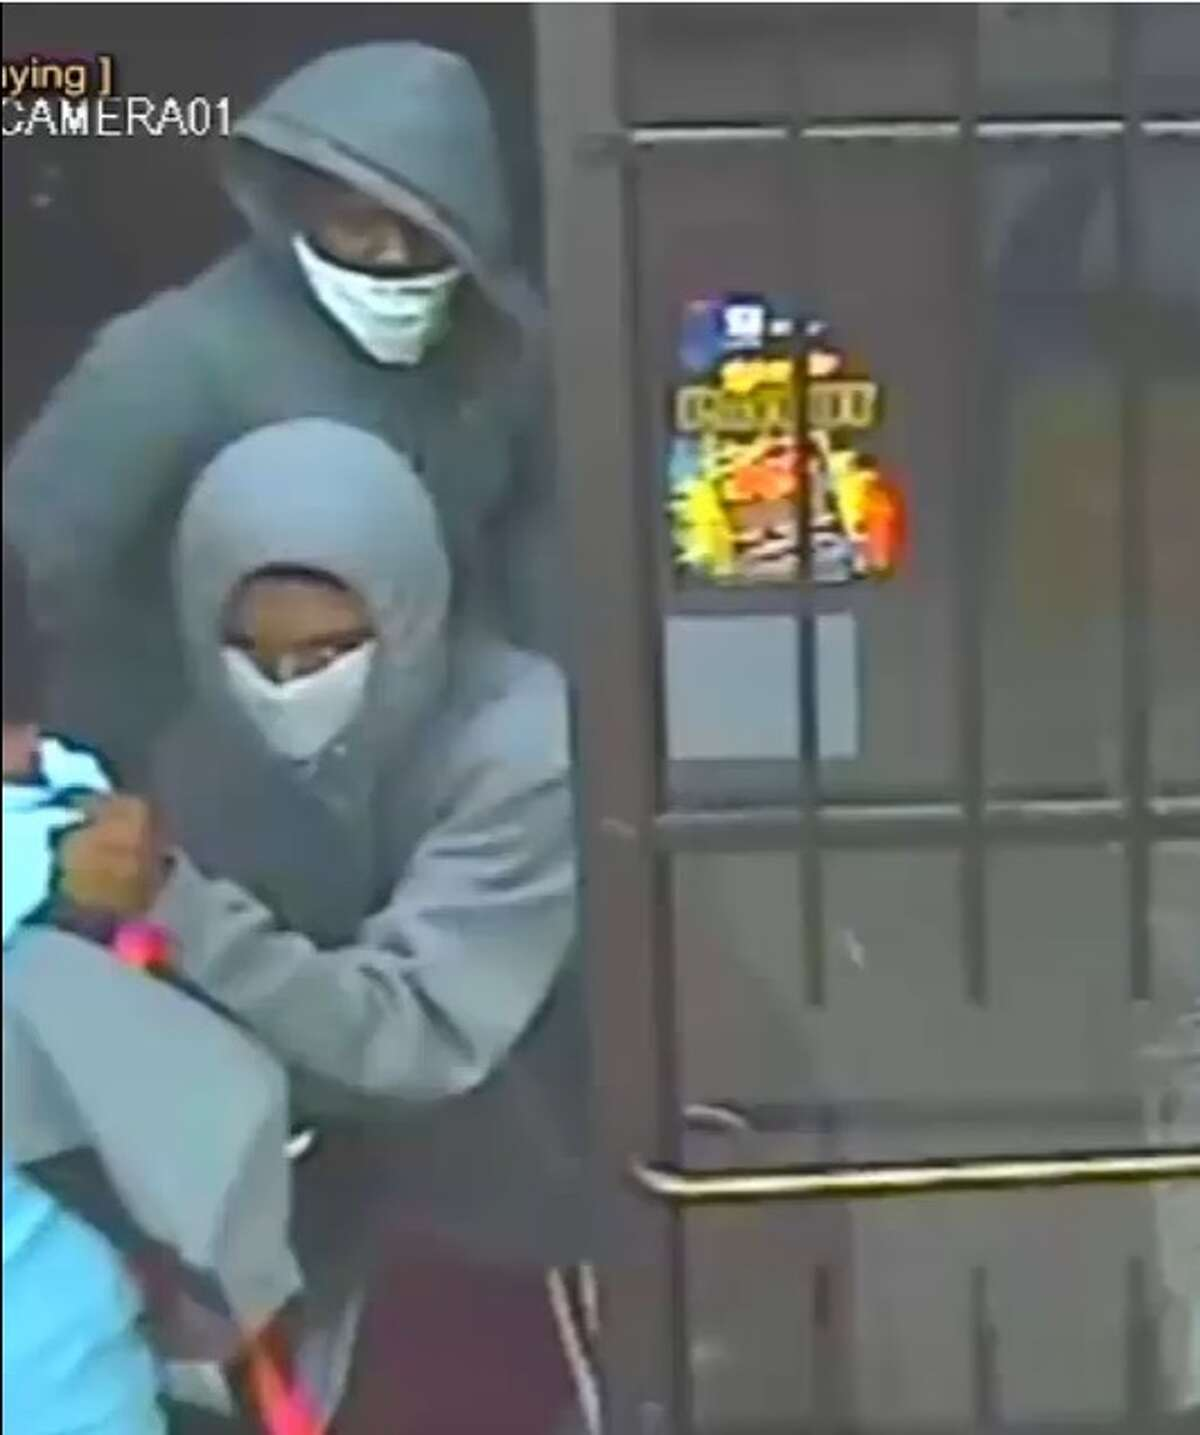 Crime Stoppers and the Harris County Sheriff's Office is searching for two suspects involved in an aggravated robbery involving a deadly weapon. The robbery was at a gas station at 10:55 p.m. on Sept. 18, 2016 on the 3700 block of Greenhouse.